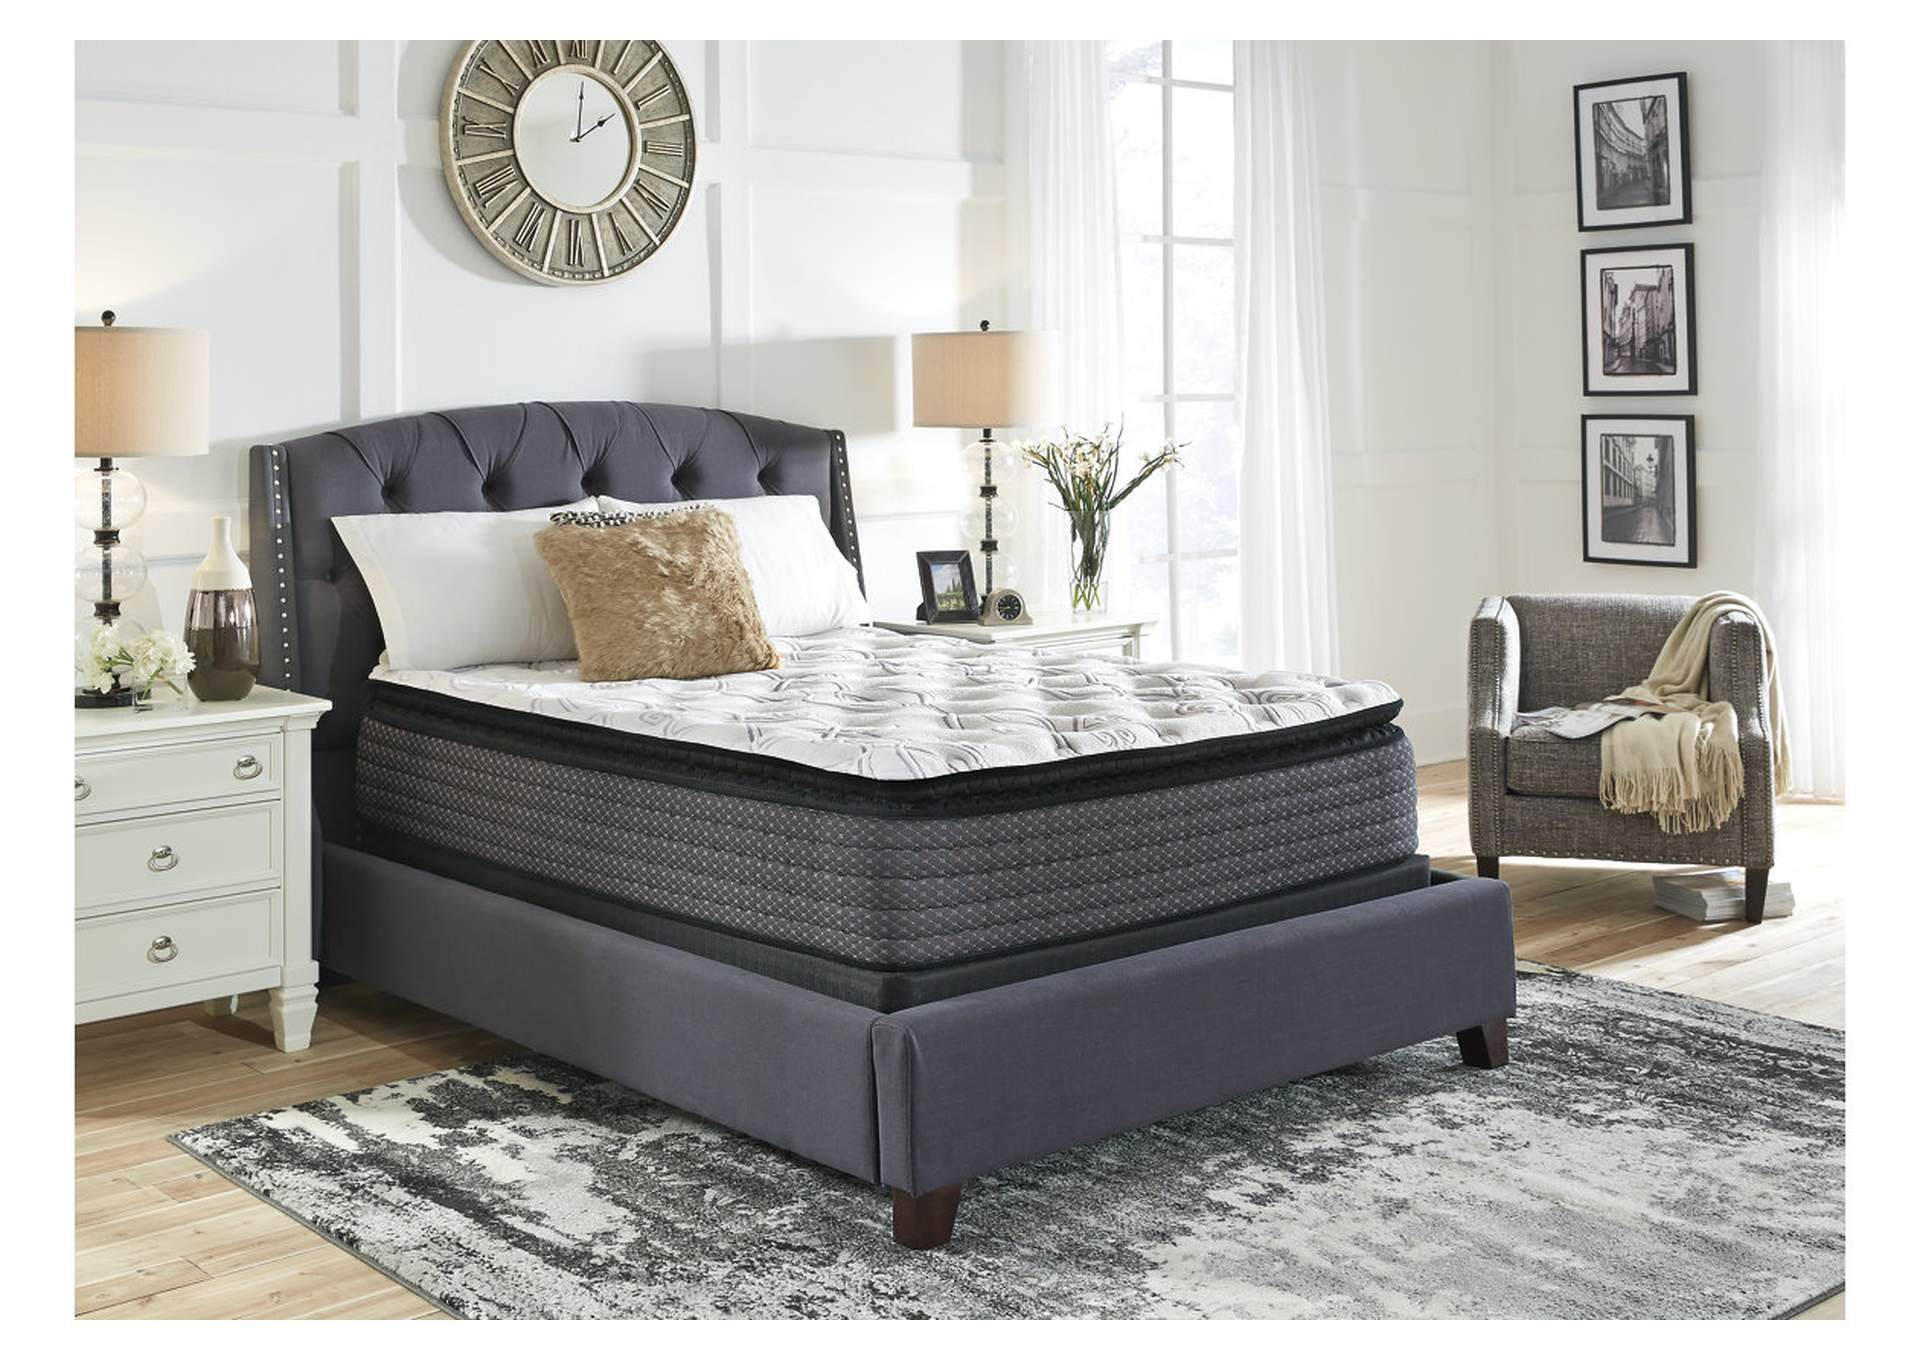 Limited Edition White Pillowtop Full Mattress,Sierra Sleep by Ashley